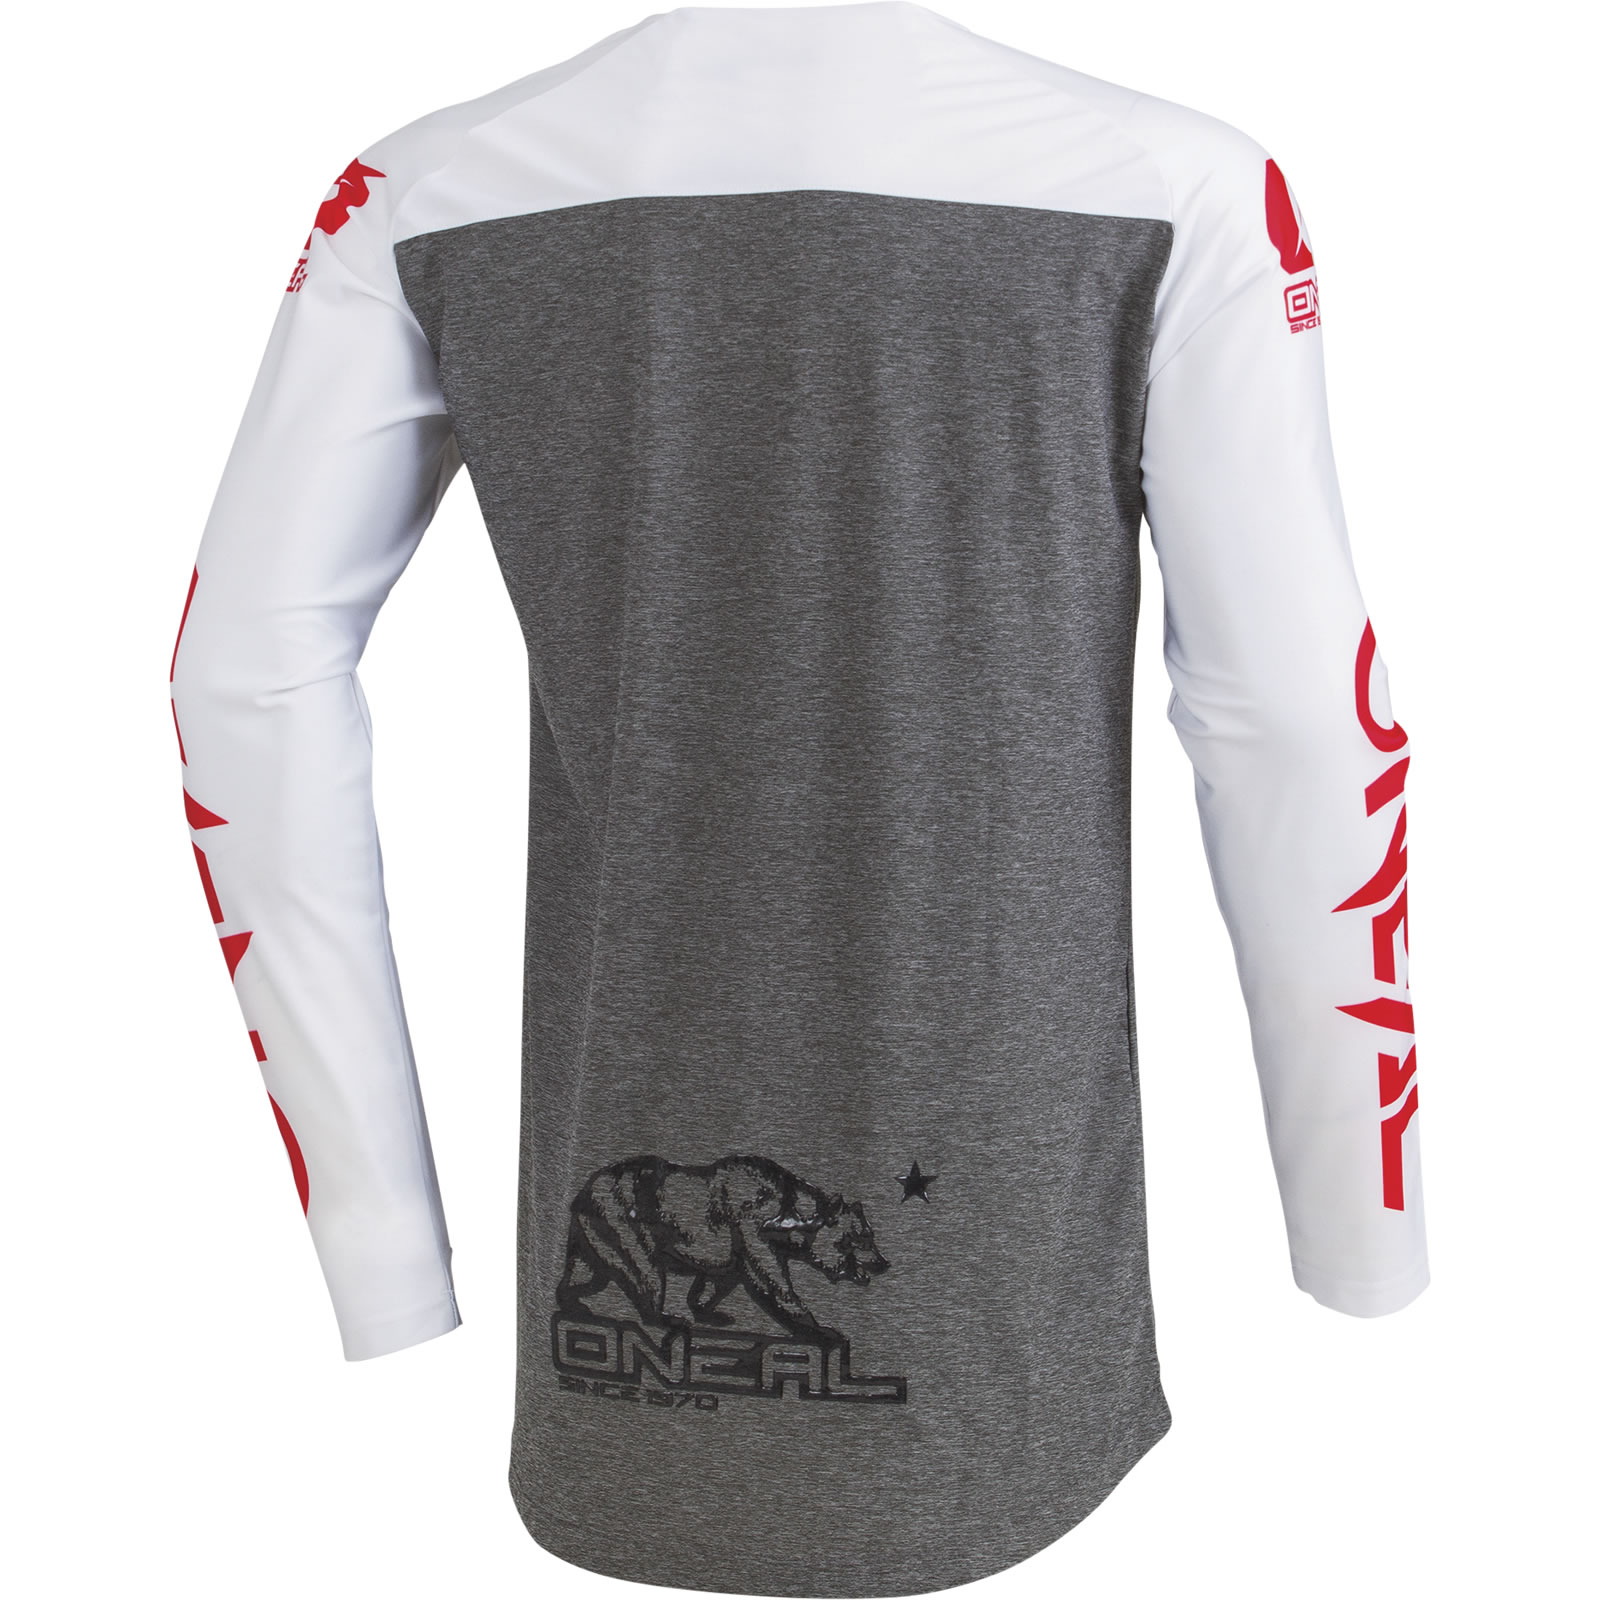 Oneal Mayhem Lite 2019 Hexx Motocross Jersey Mx Gear Shirt Top Race Clothing Vehicle Parts Accessories Motocross Off Road Clothing